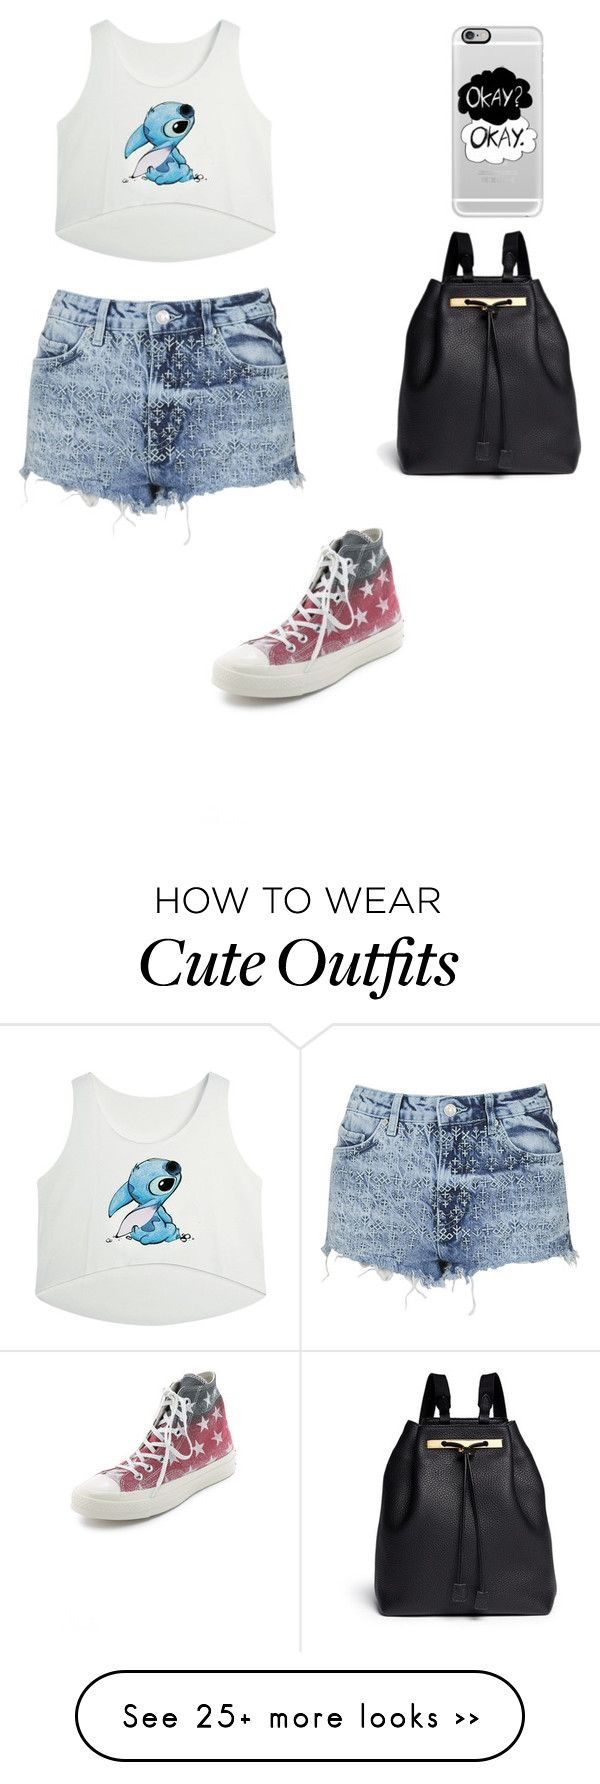 """""""First Outfit!"""" by ireneadysti on Polyvore featuring Topshop, Converse, The Row and Casetify"""